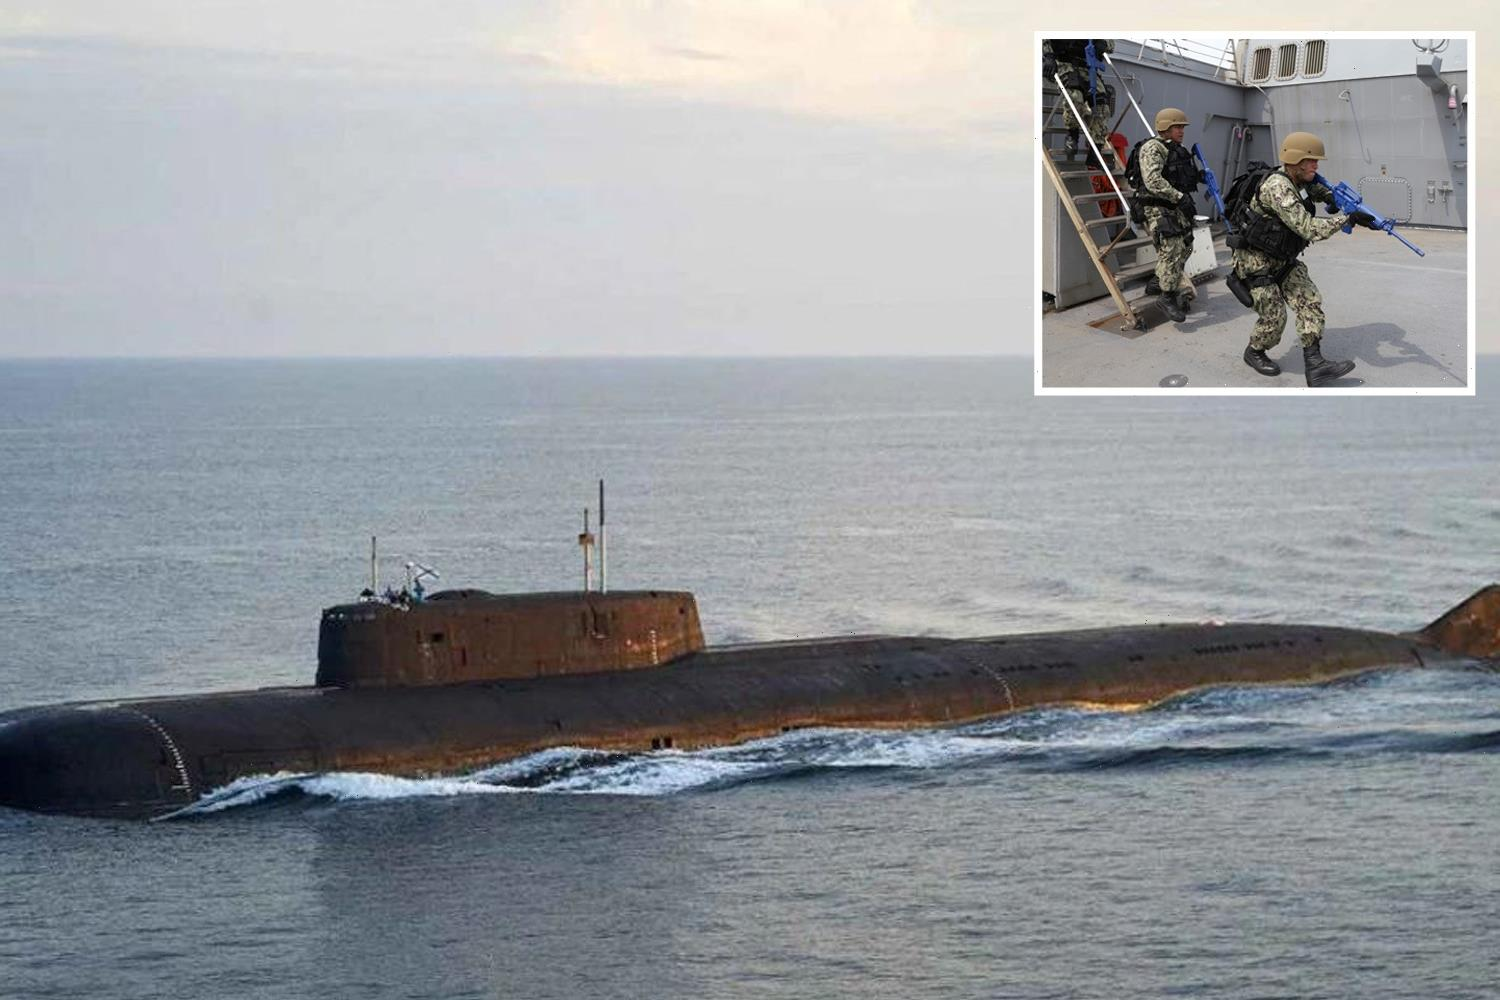 WW3 fears as Russian nuclear submarines spotted in Baltic Sea as US assault ship seen in Black Sea